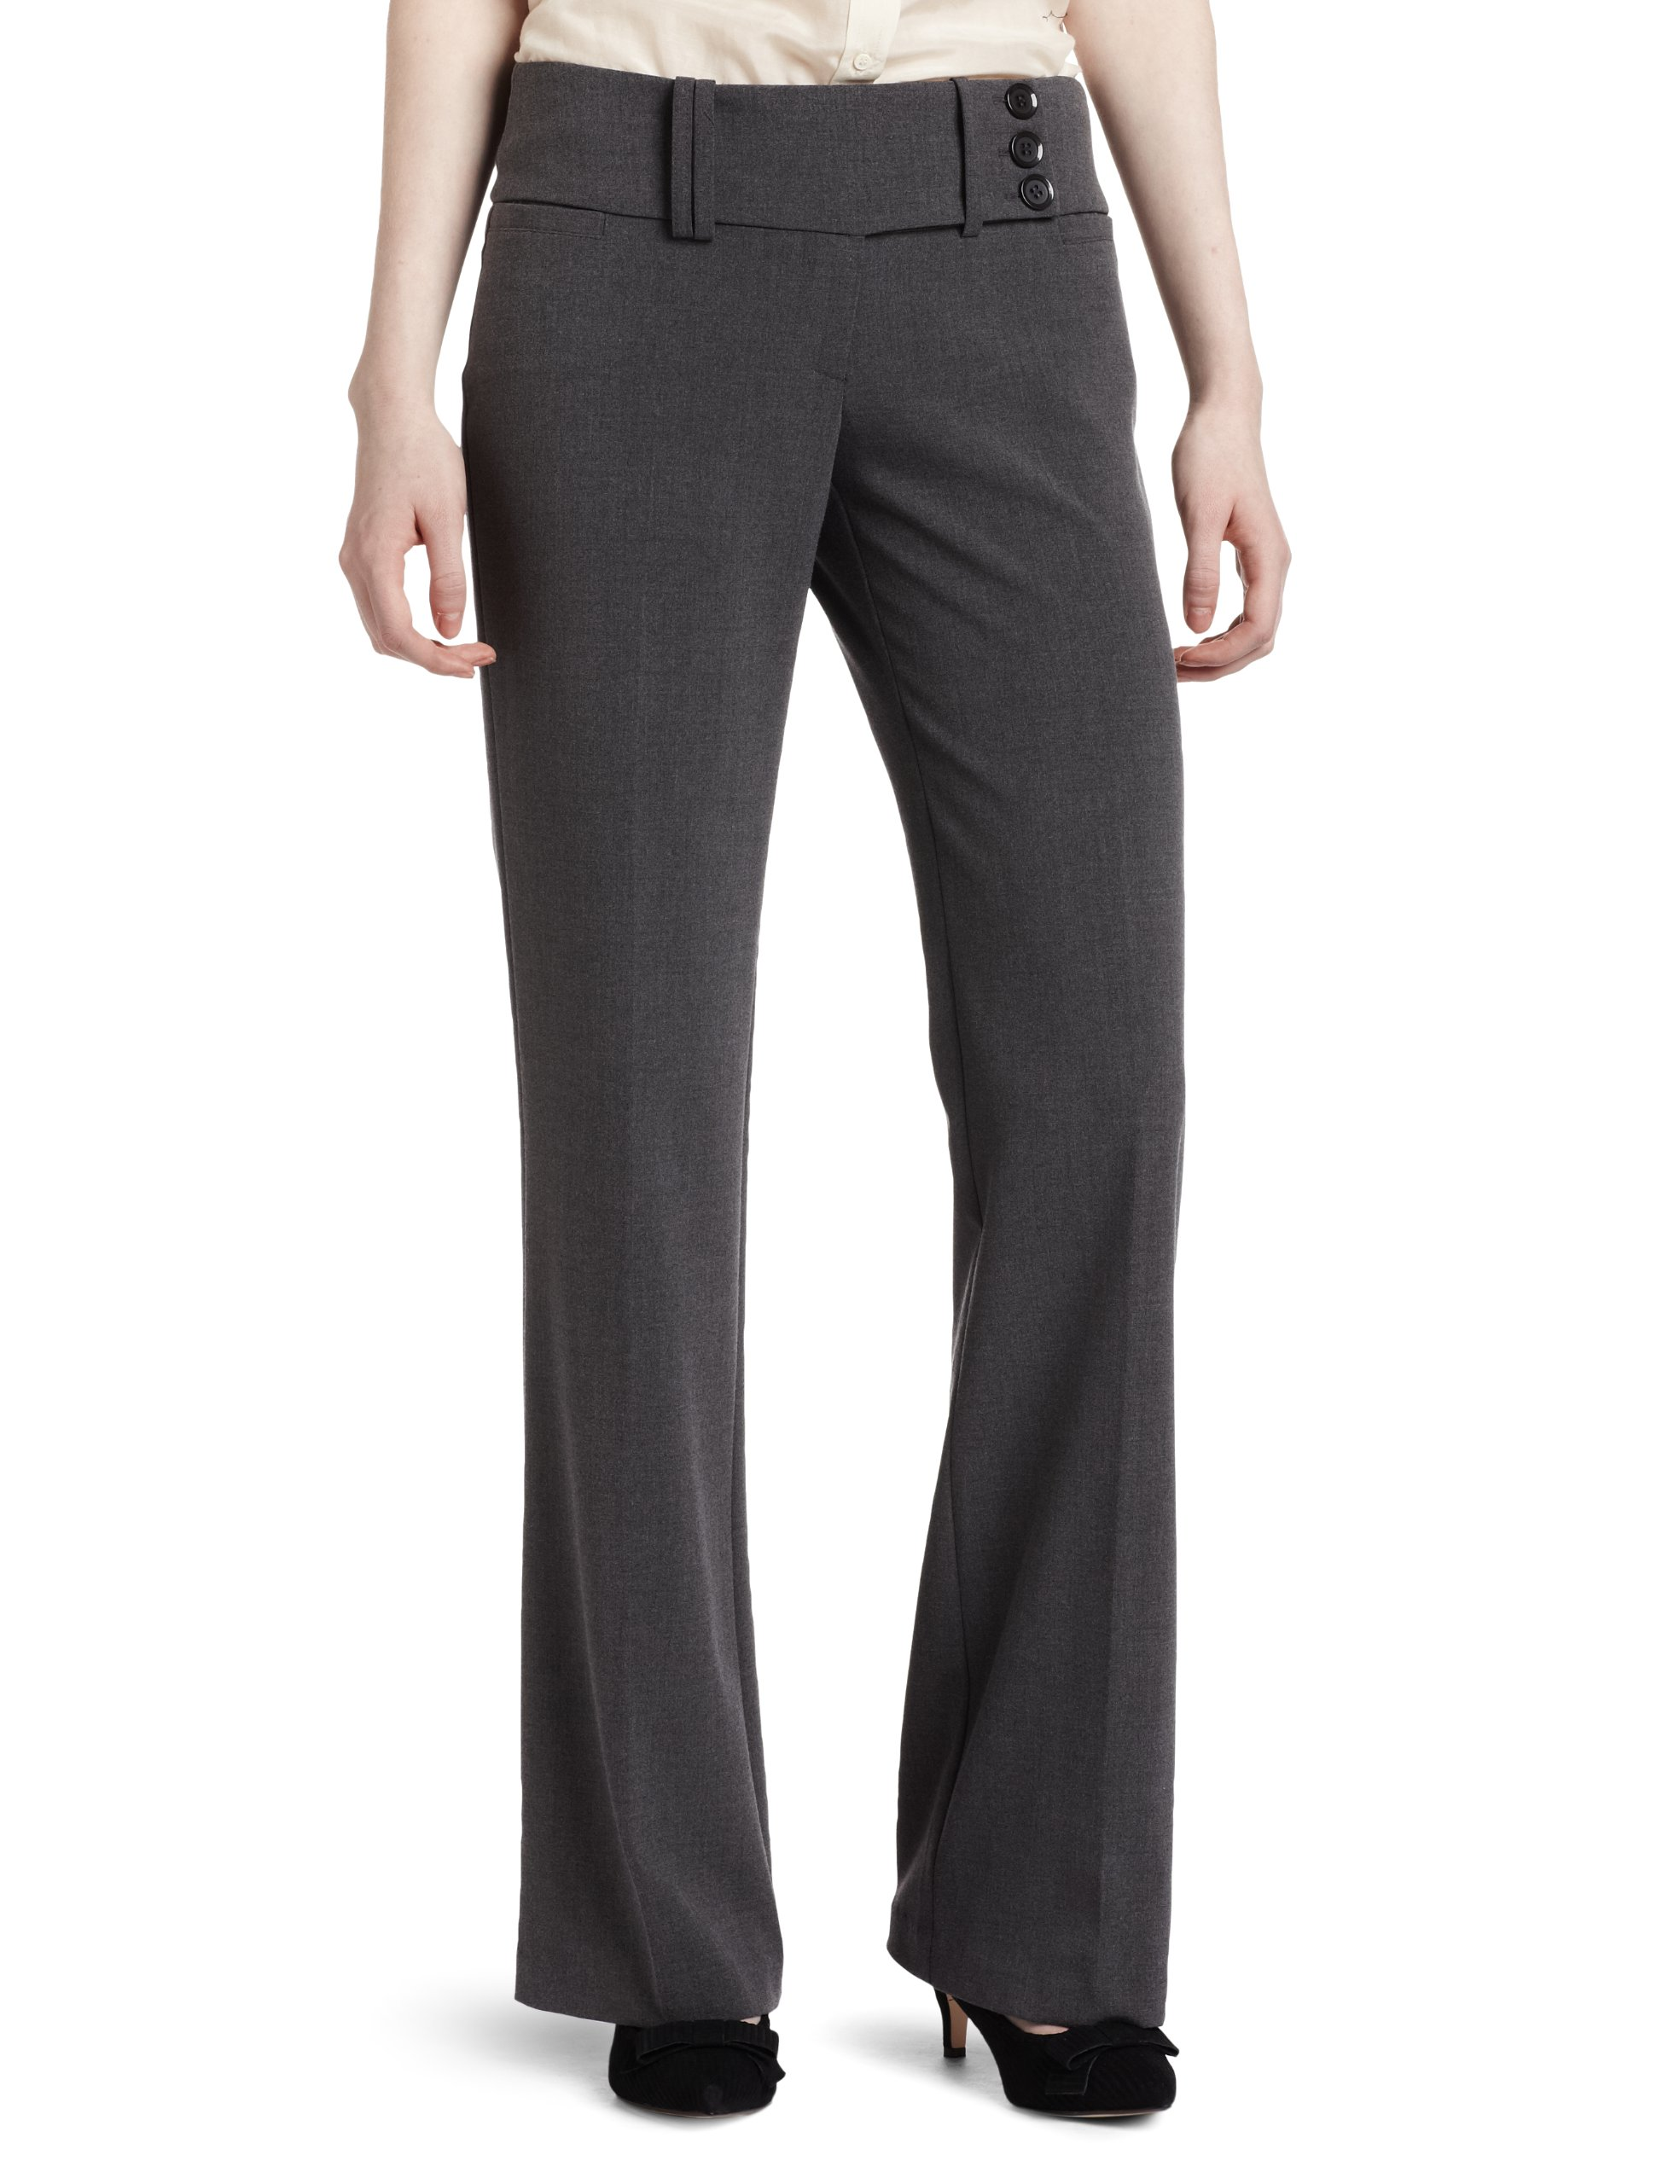 My Michelle Juniors Wide Waist Band 3 Button Tab Pant, Gray, 9